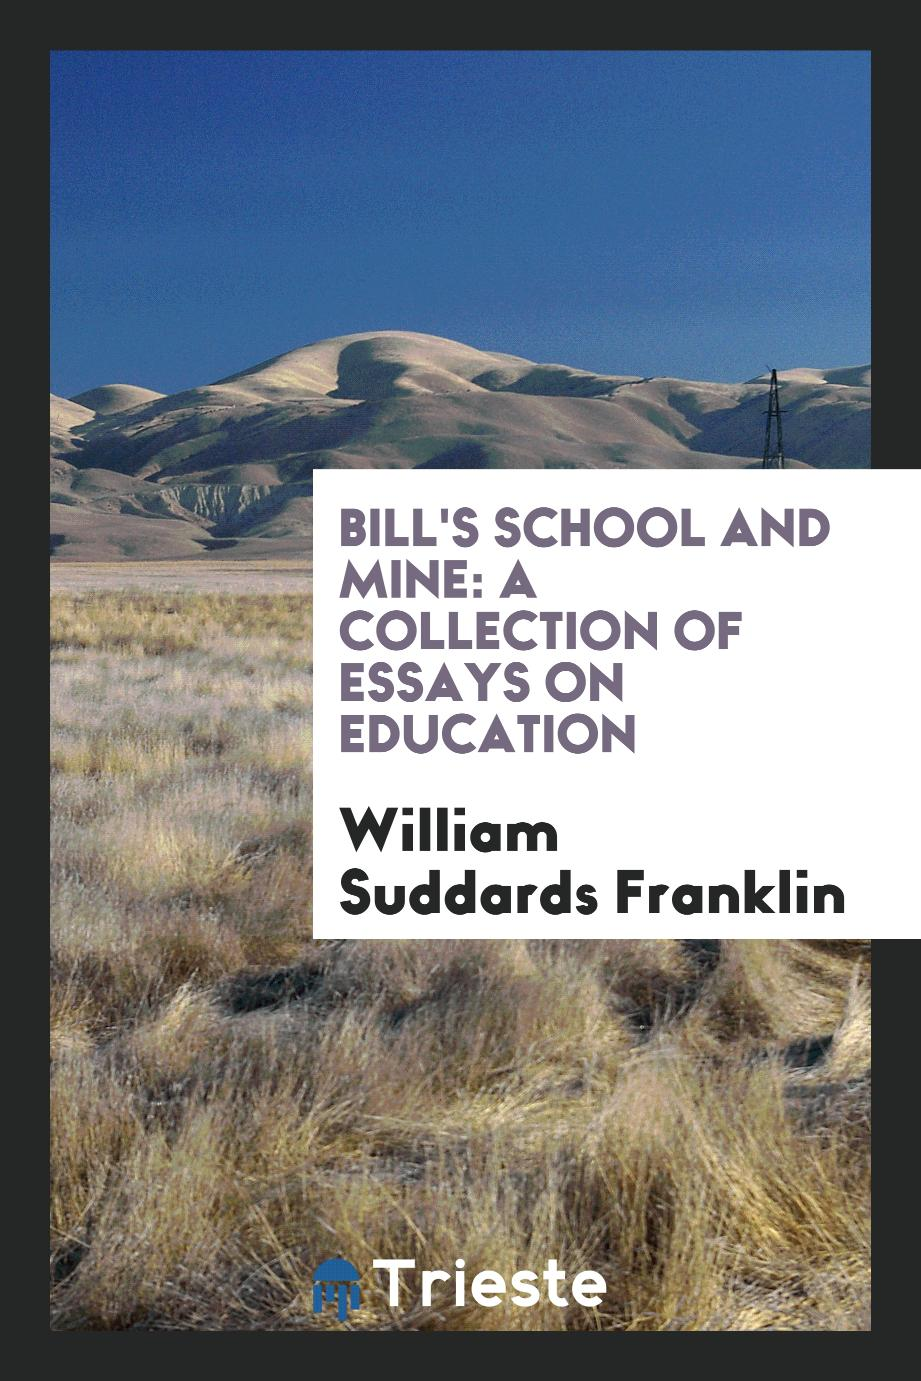 Bill's School and Mine: A Collection of Essays on Education